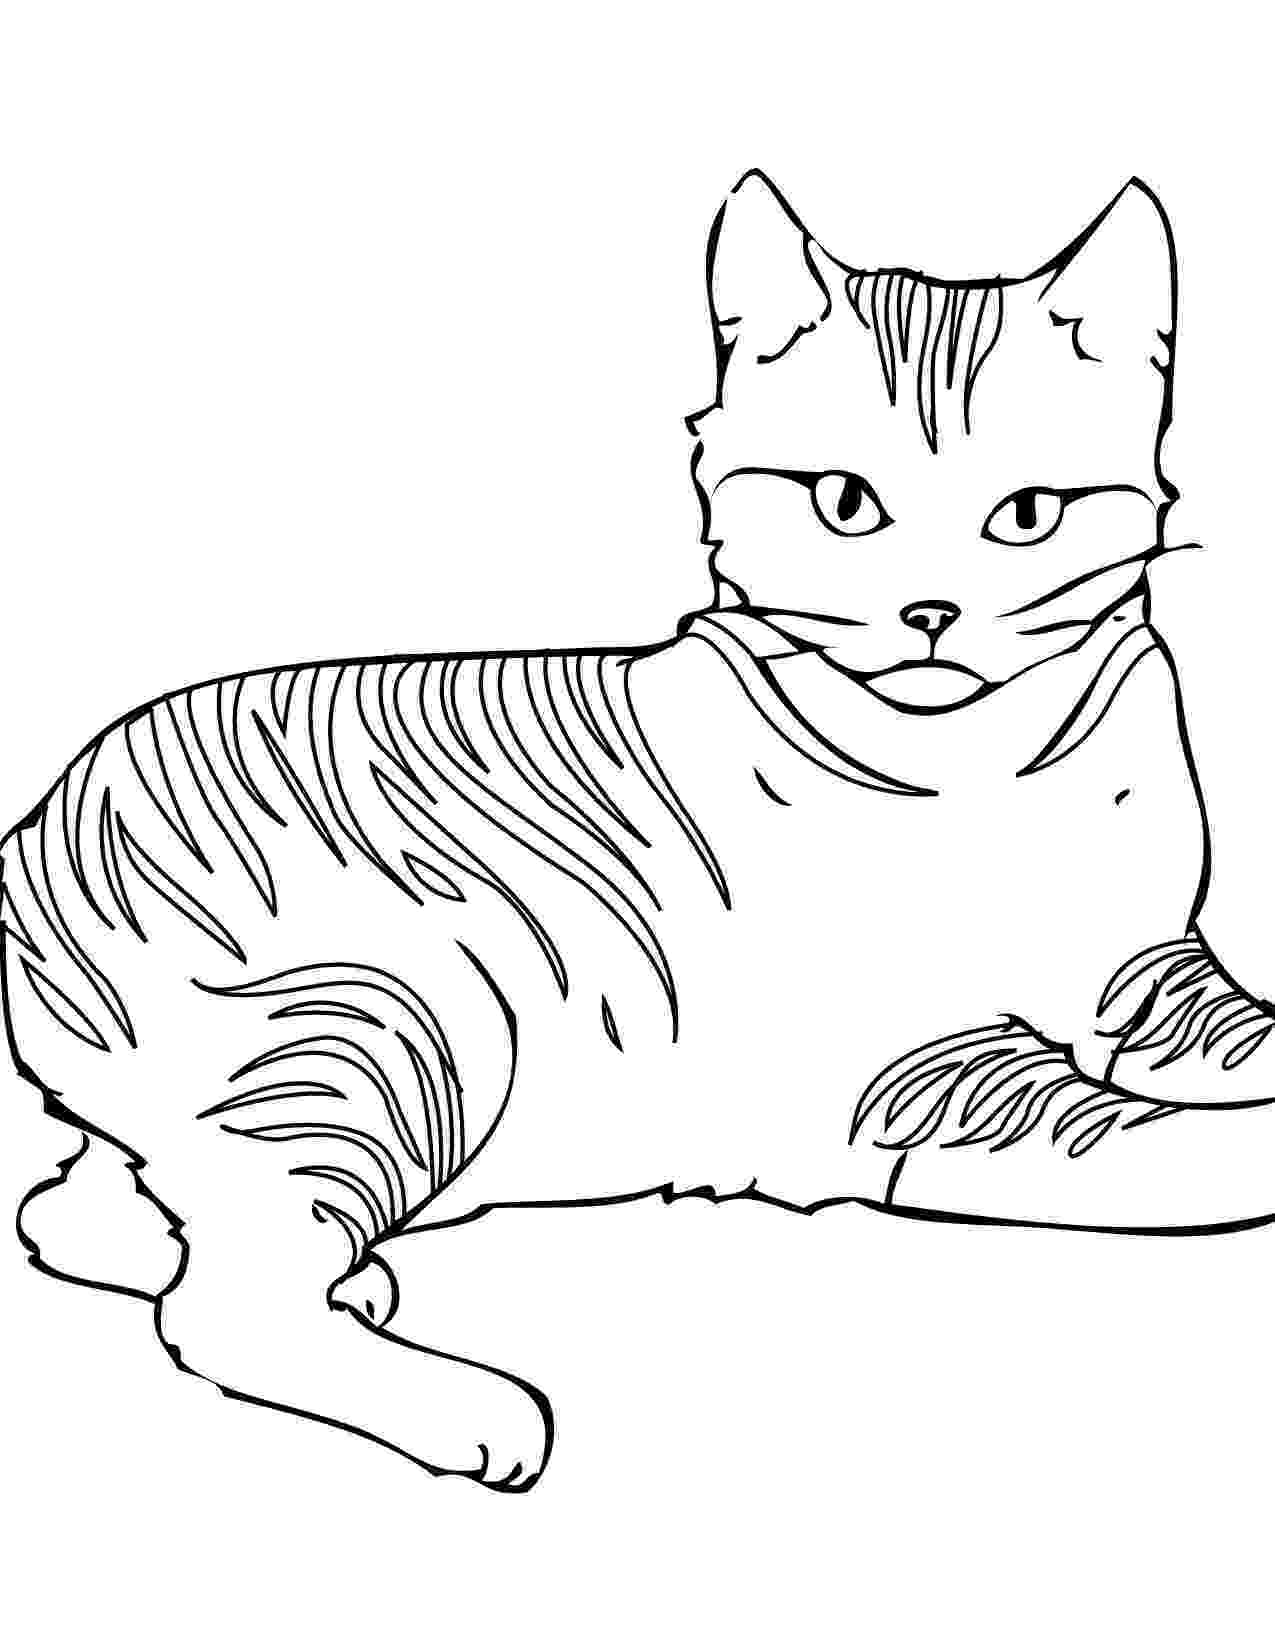 picture of a cat to color free printable cat coloring pages for kids picture a cat color of to